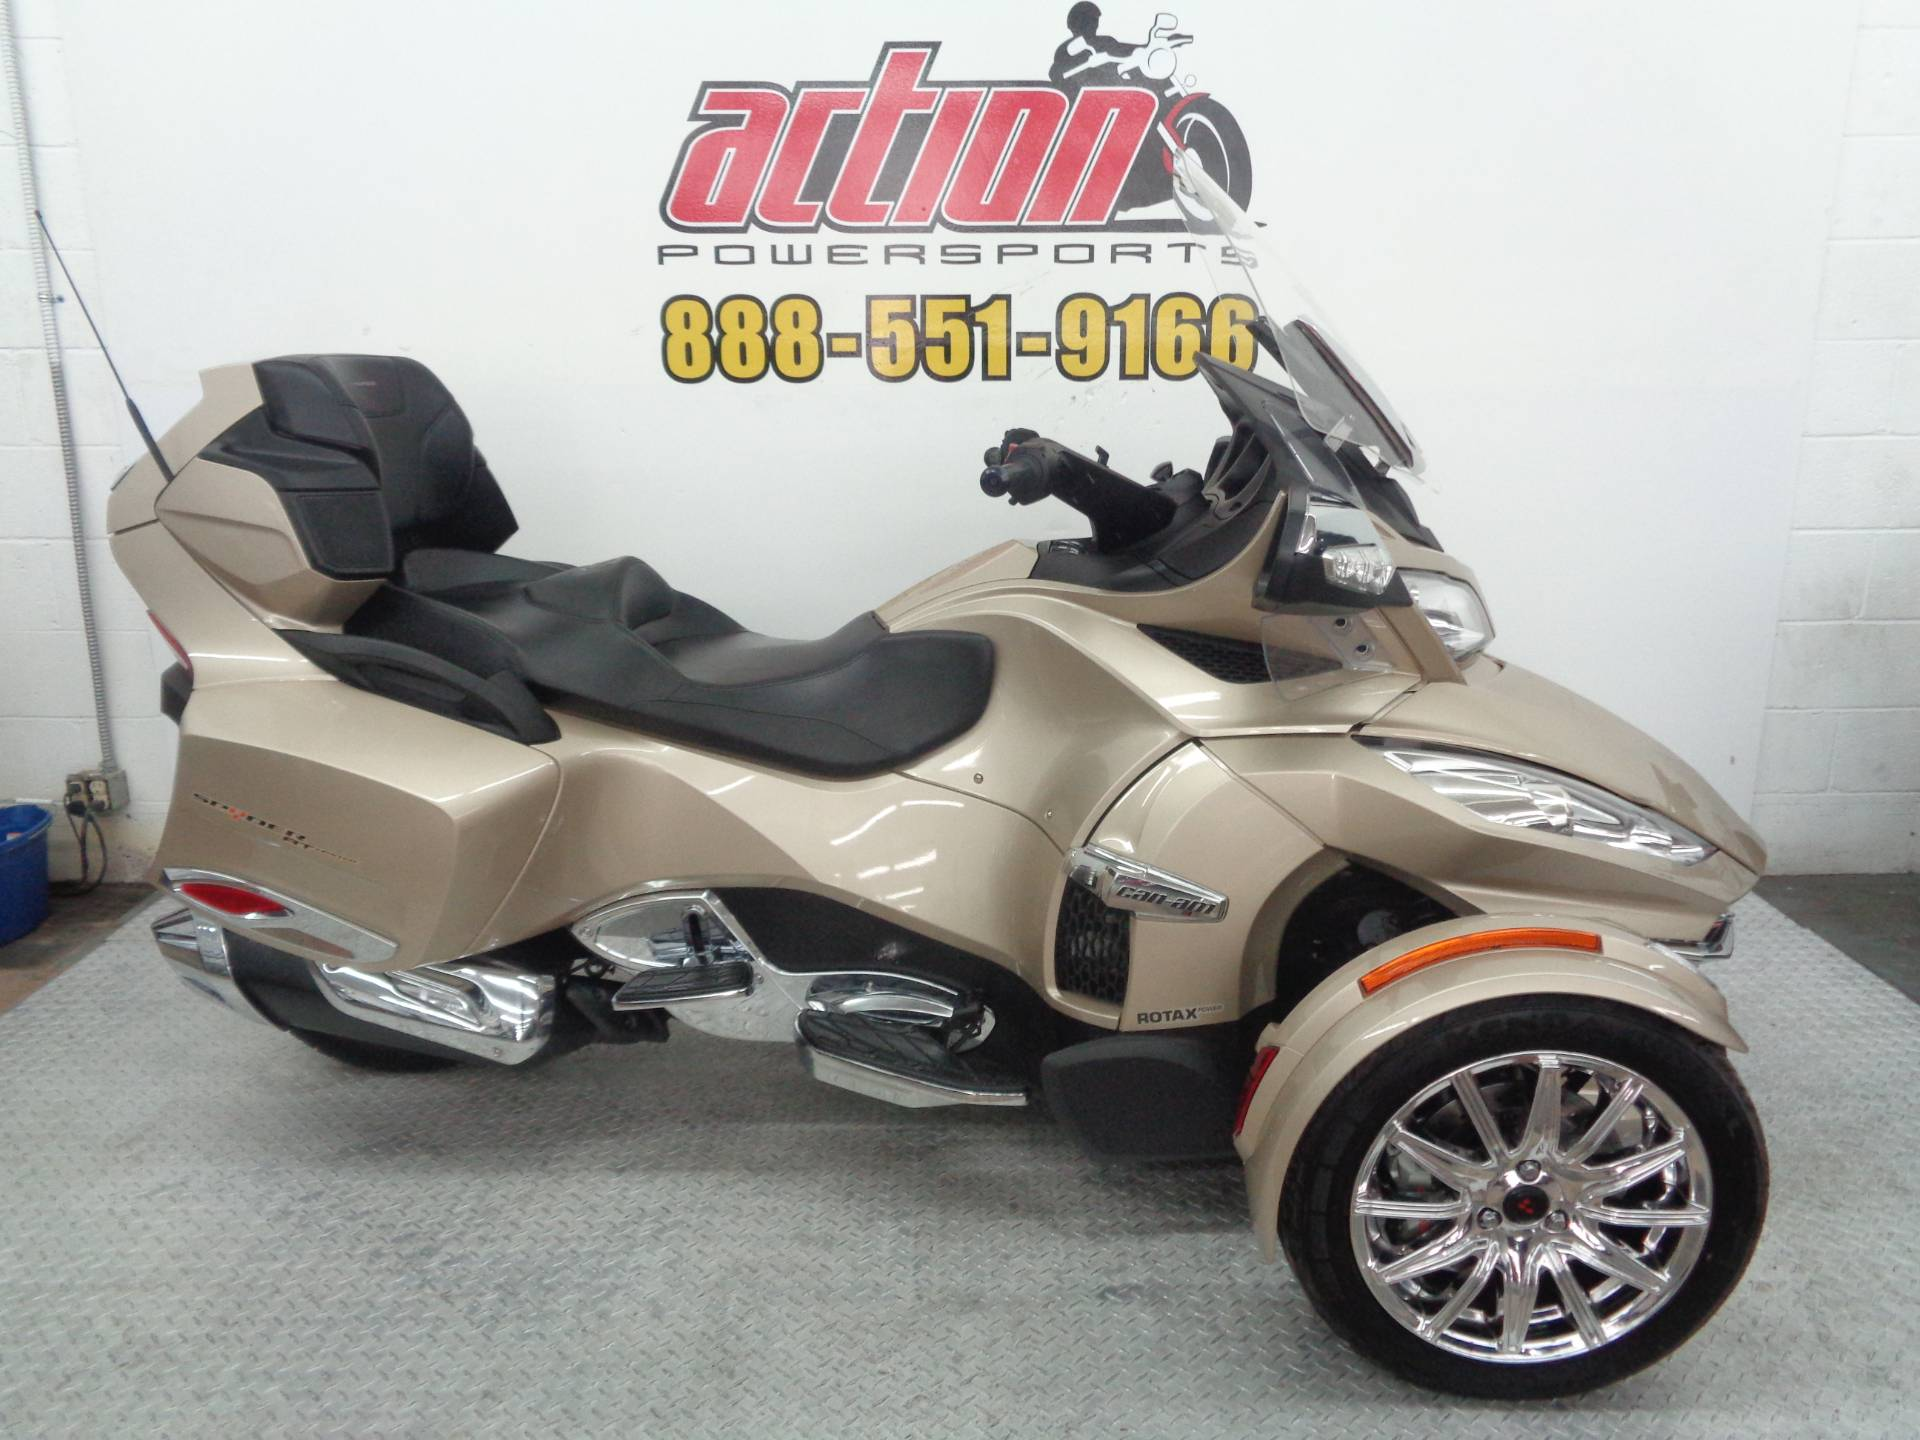 2017 Can Am Spyder Rt Limited In Tulsa Oklahoma Photo 1